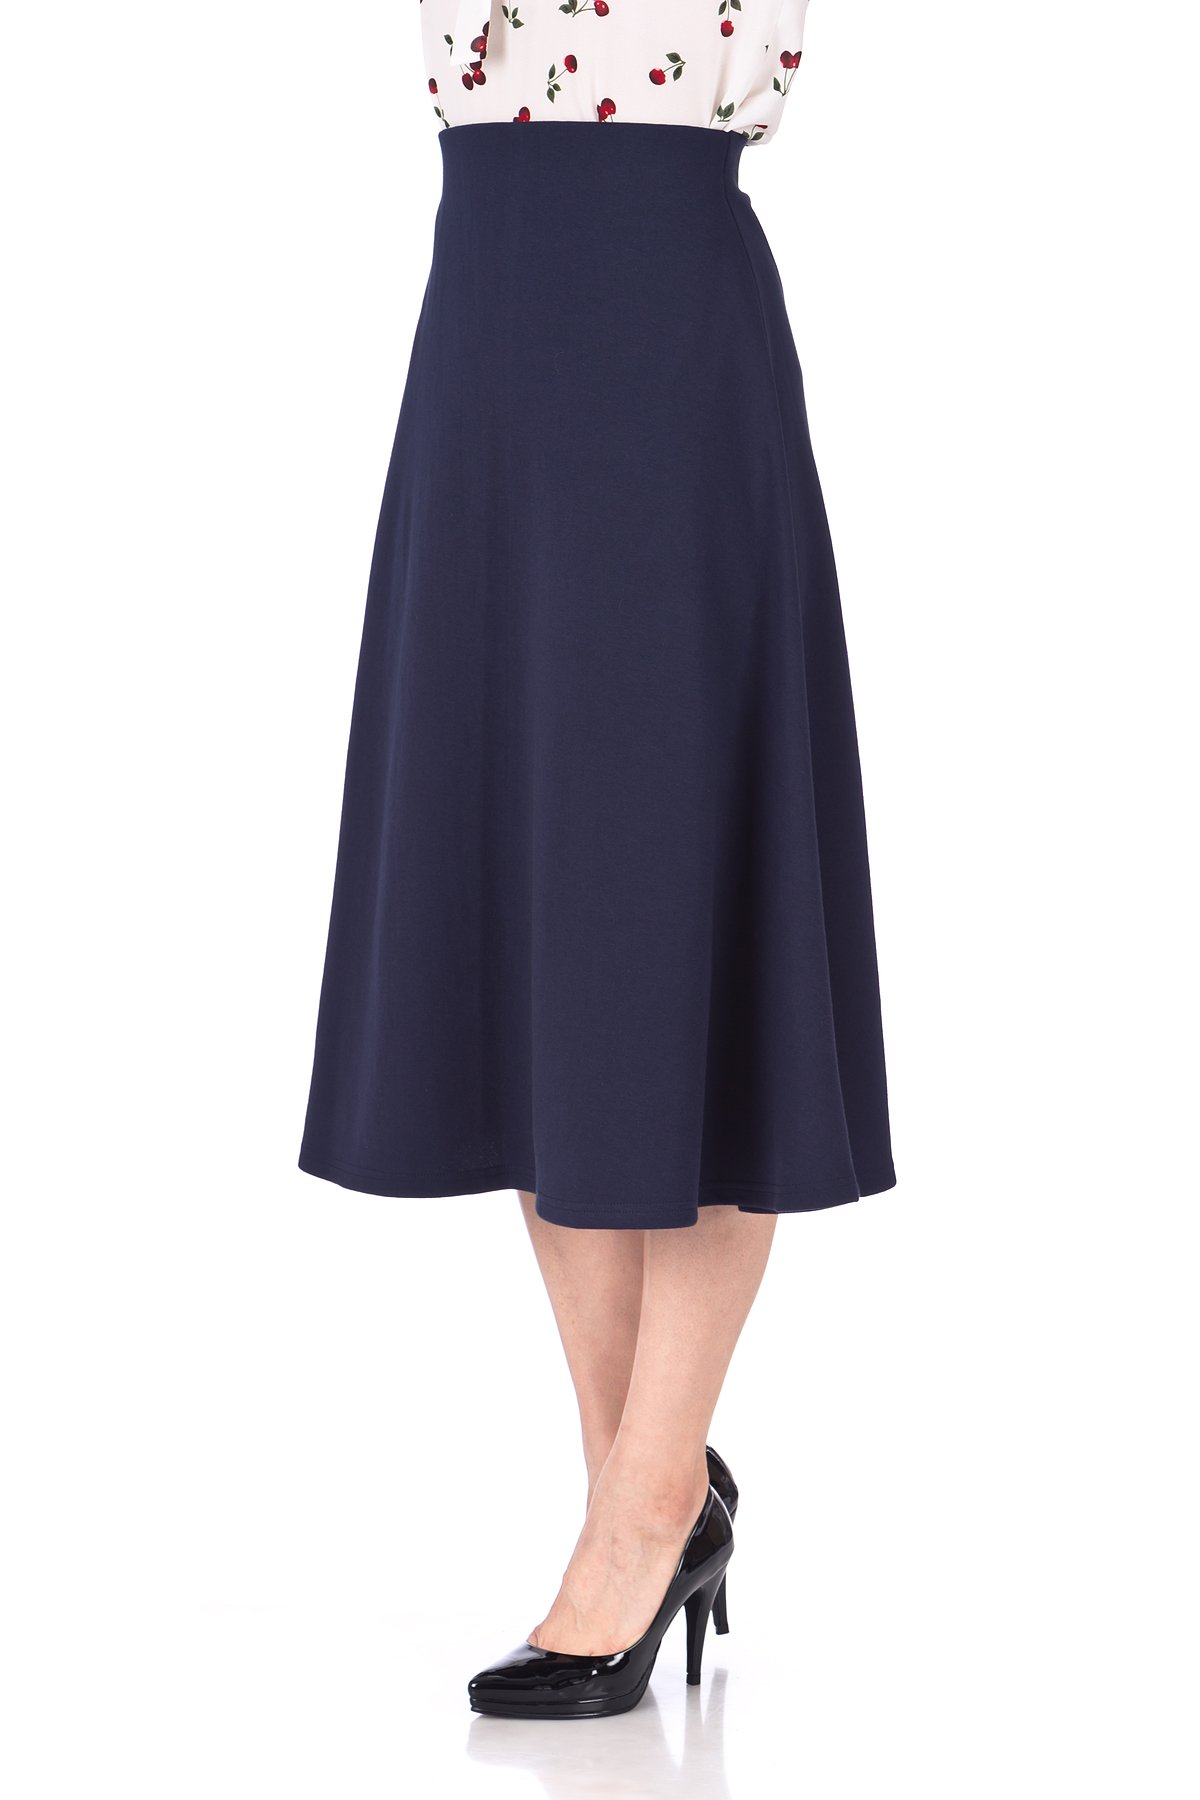 Elastic Waist A line Flared Long Skirt Navy 06